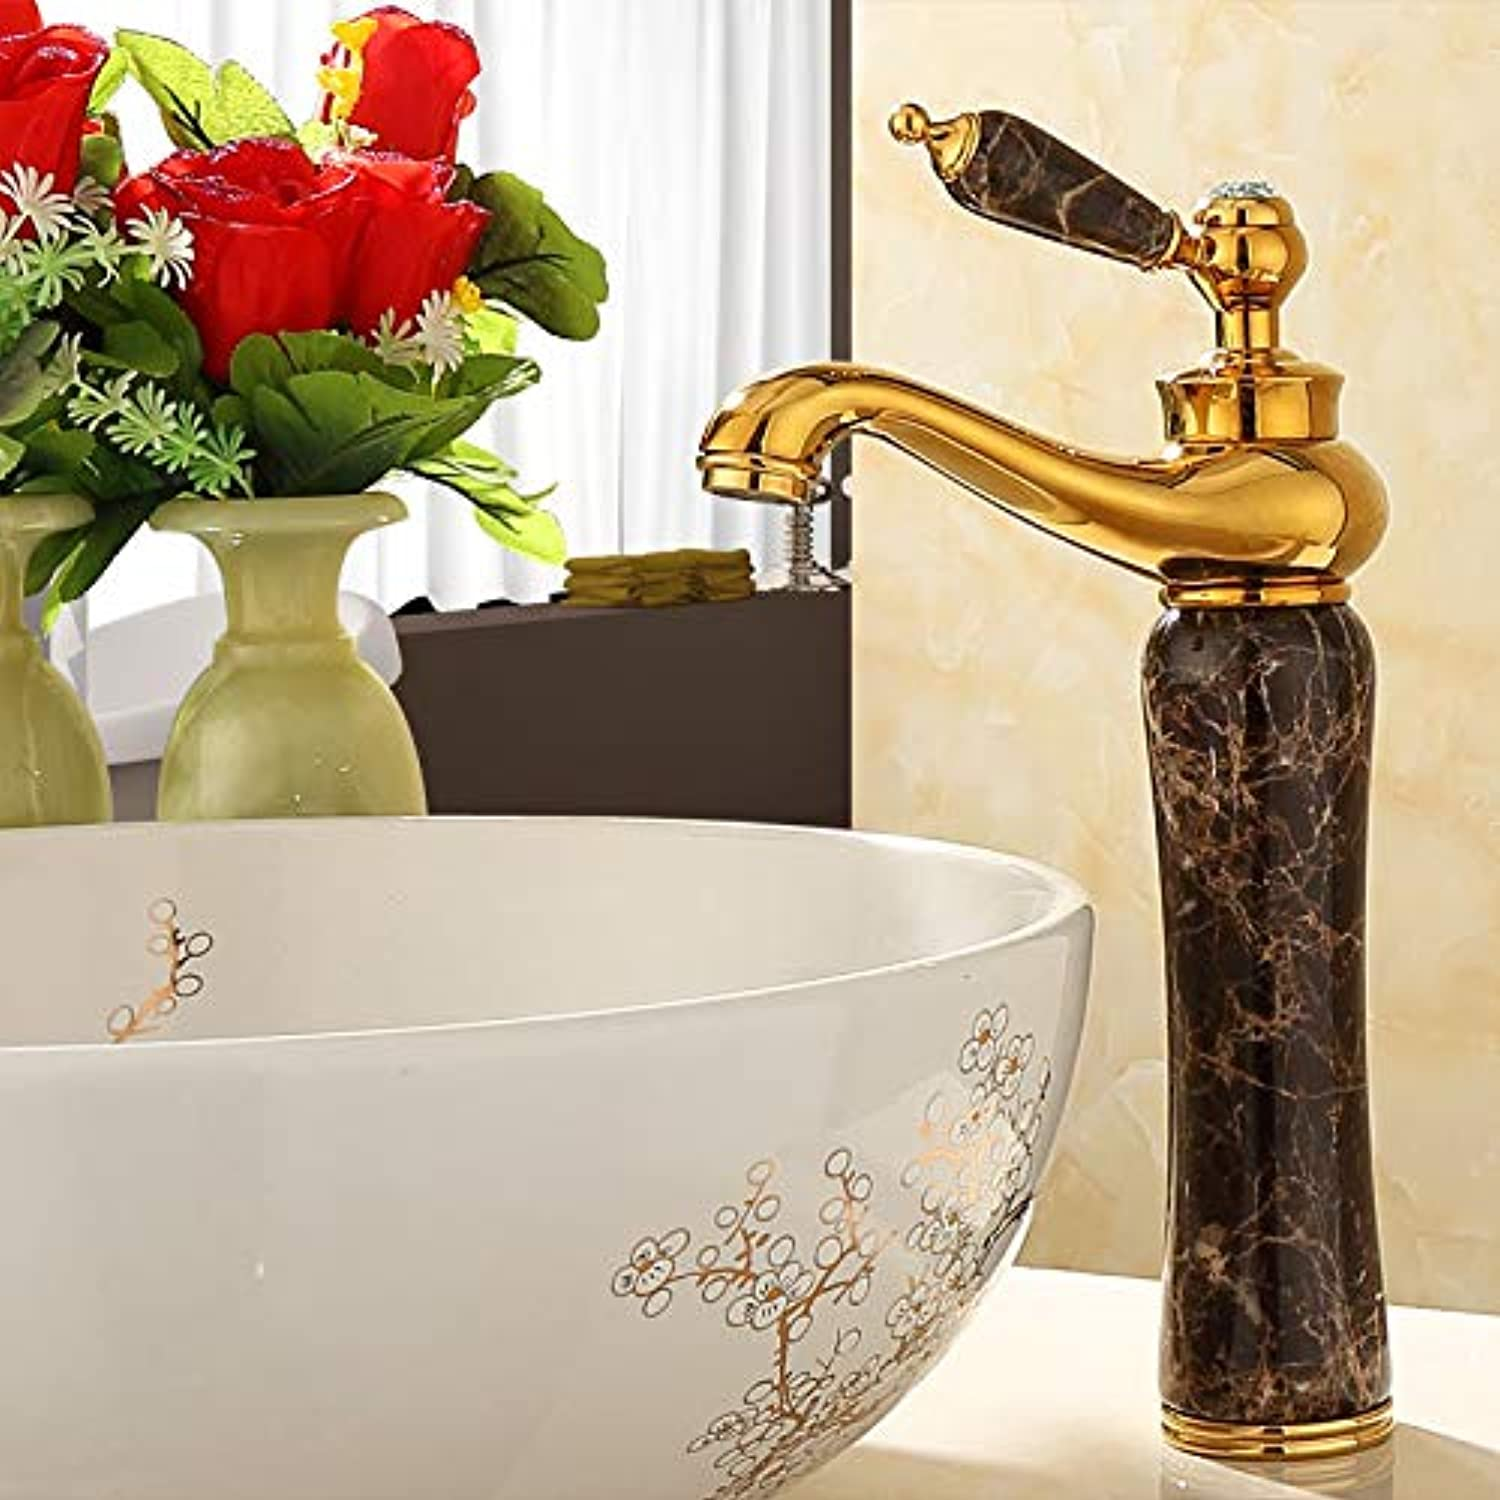 Tub Taps Faucet Copper Natural Jade Above Counter Basin Faucet gold Basin redating Height Faucet, Coffee Network Section D